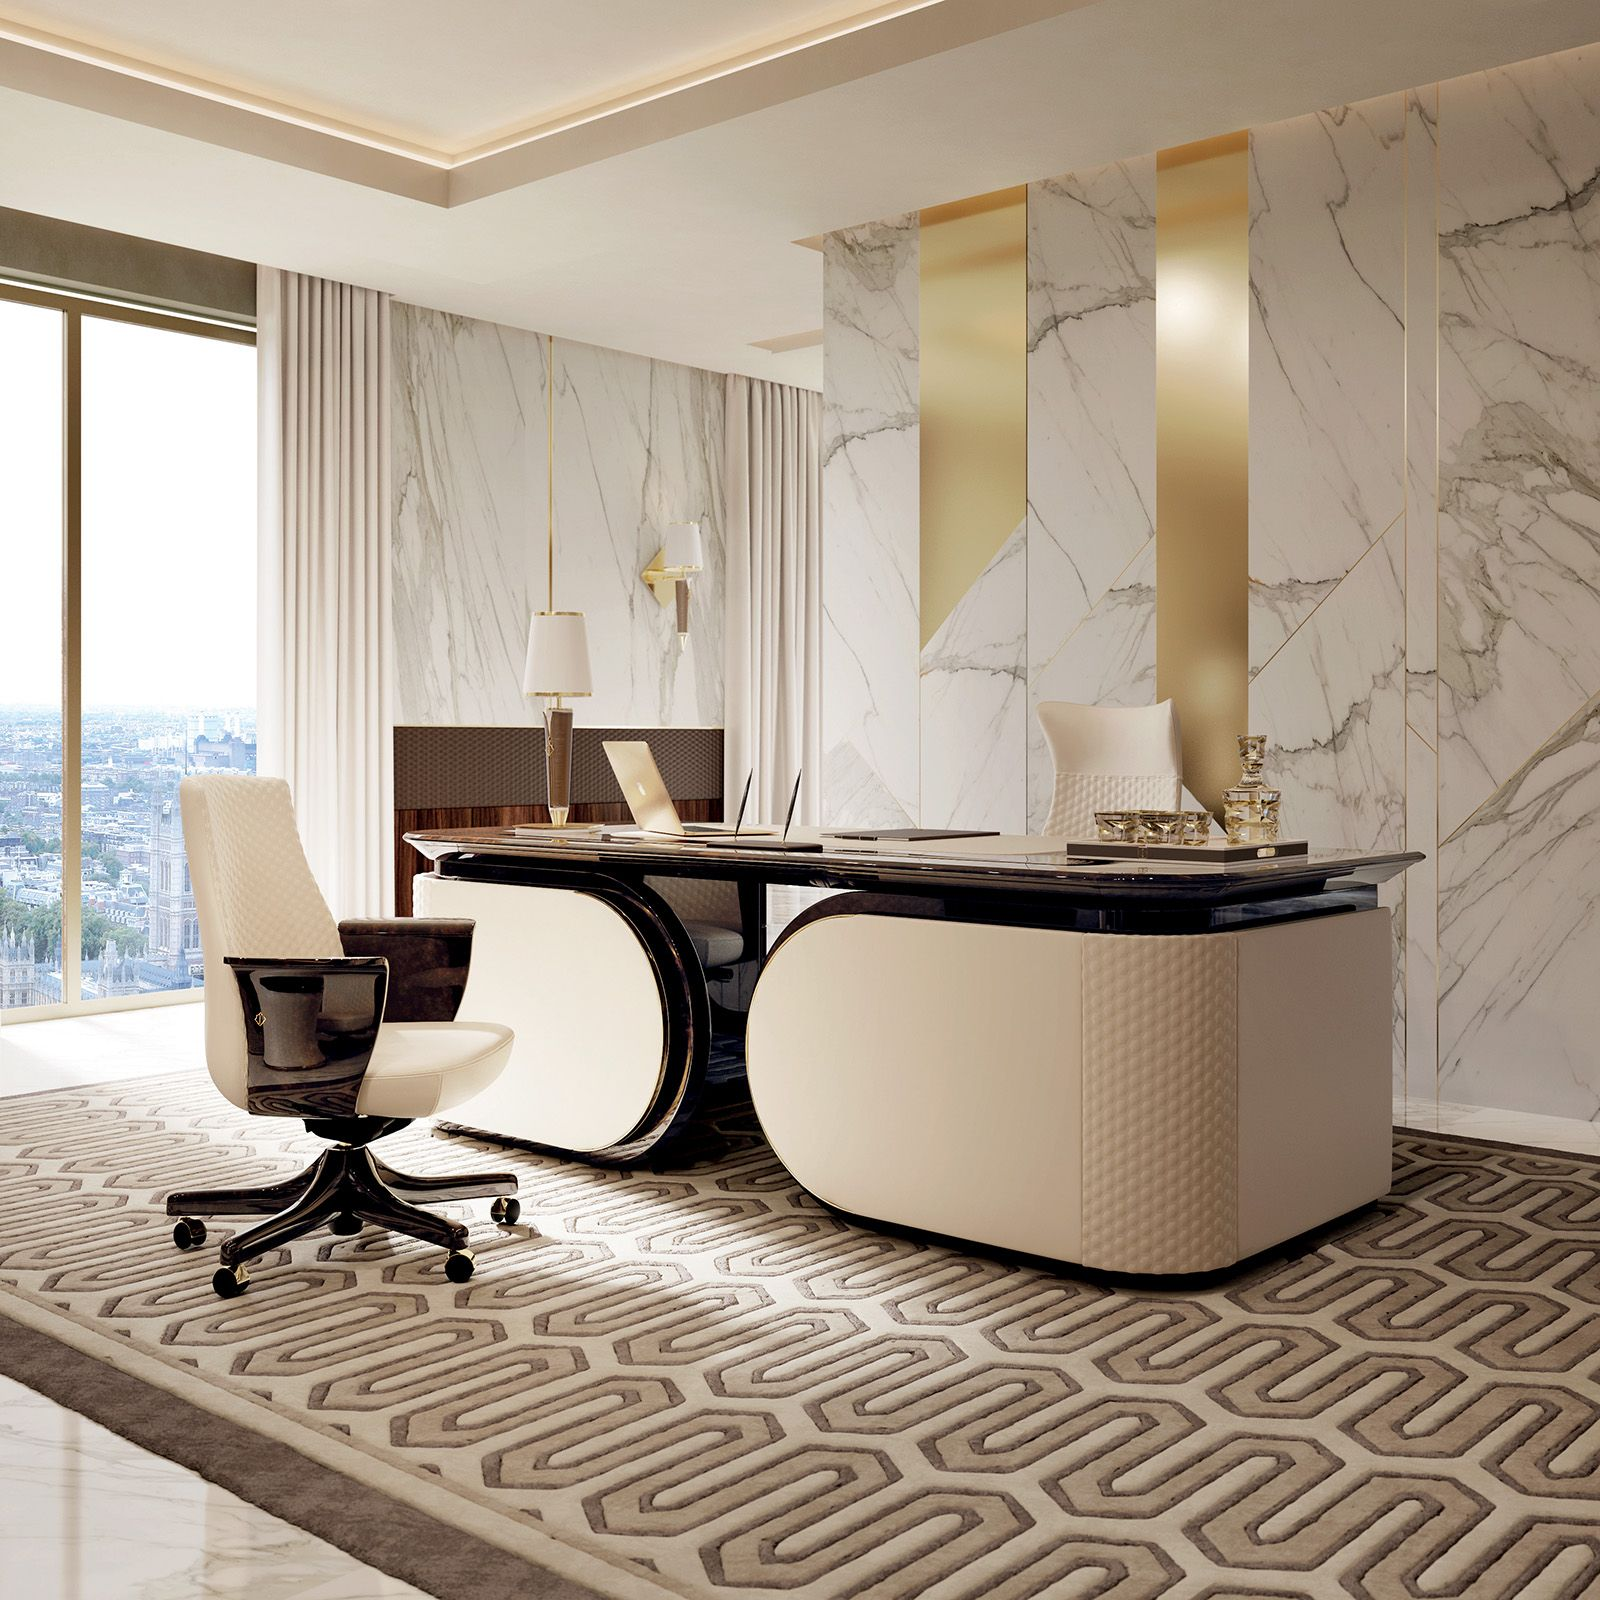 Charmant Vogue Collection Www.turri.it Italian Luxury Office Desk